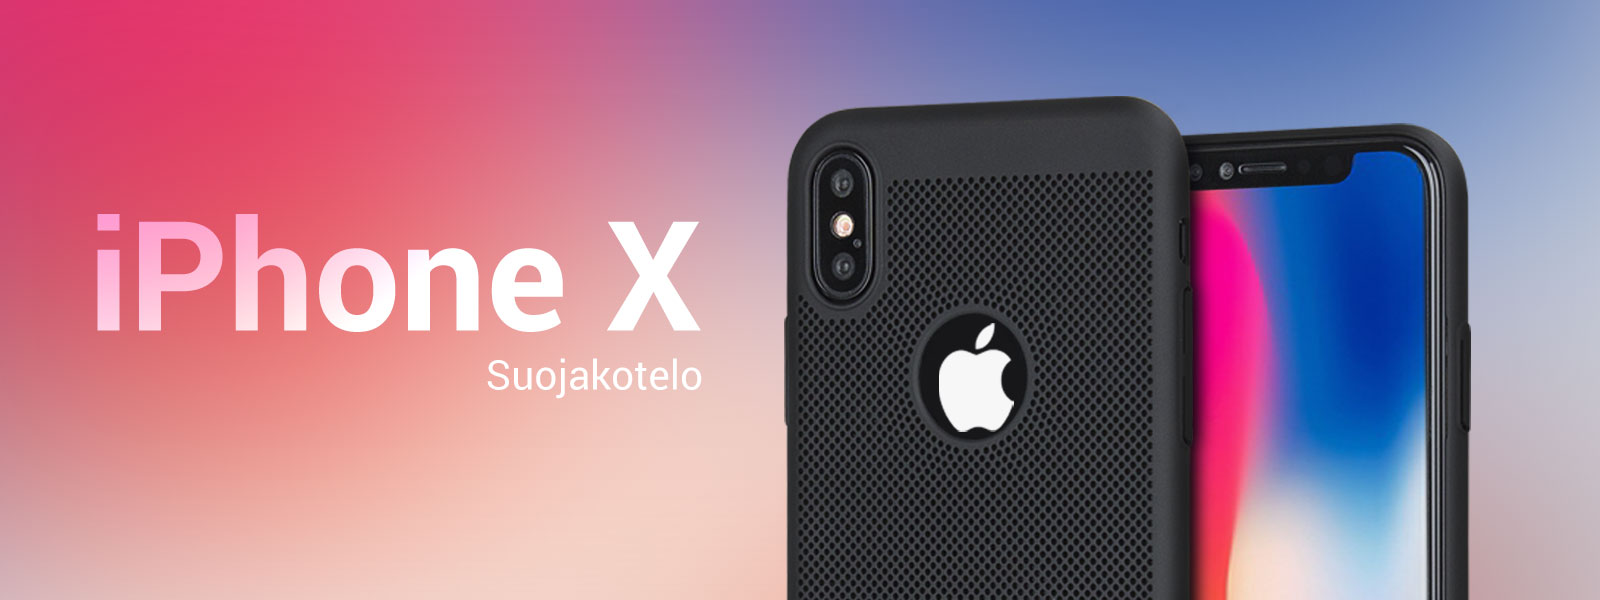 iPhone X suojakotelo - Find the best iPhone X suojakotelo